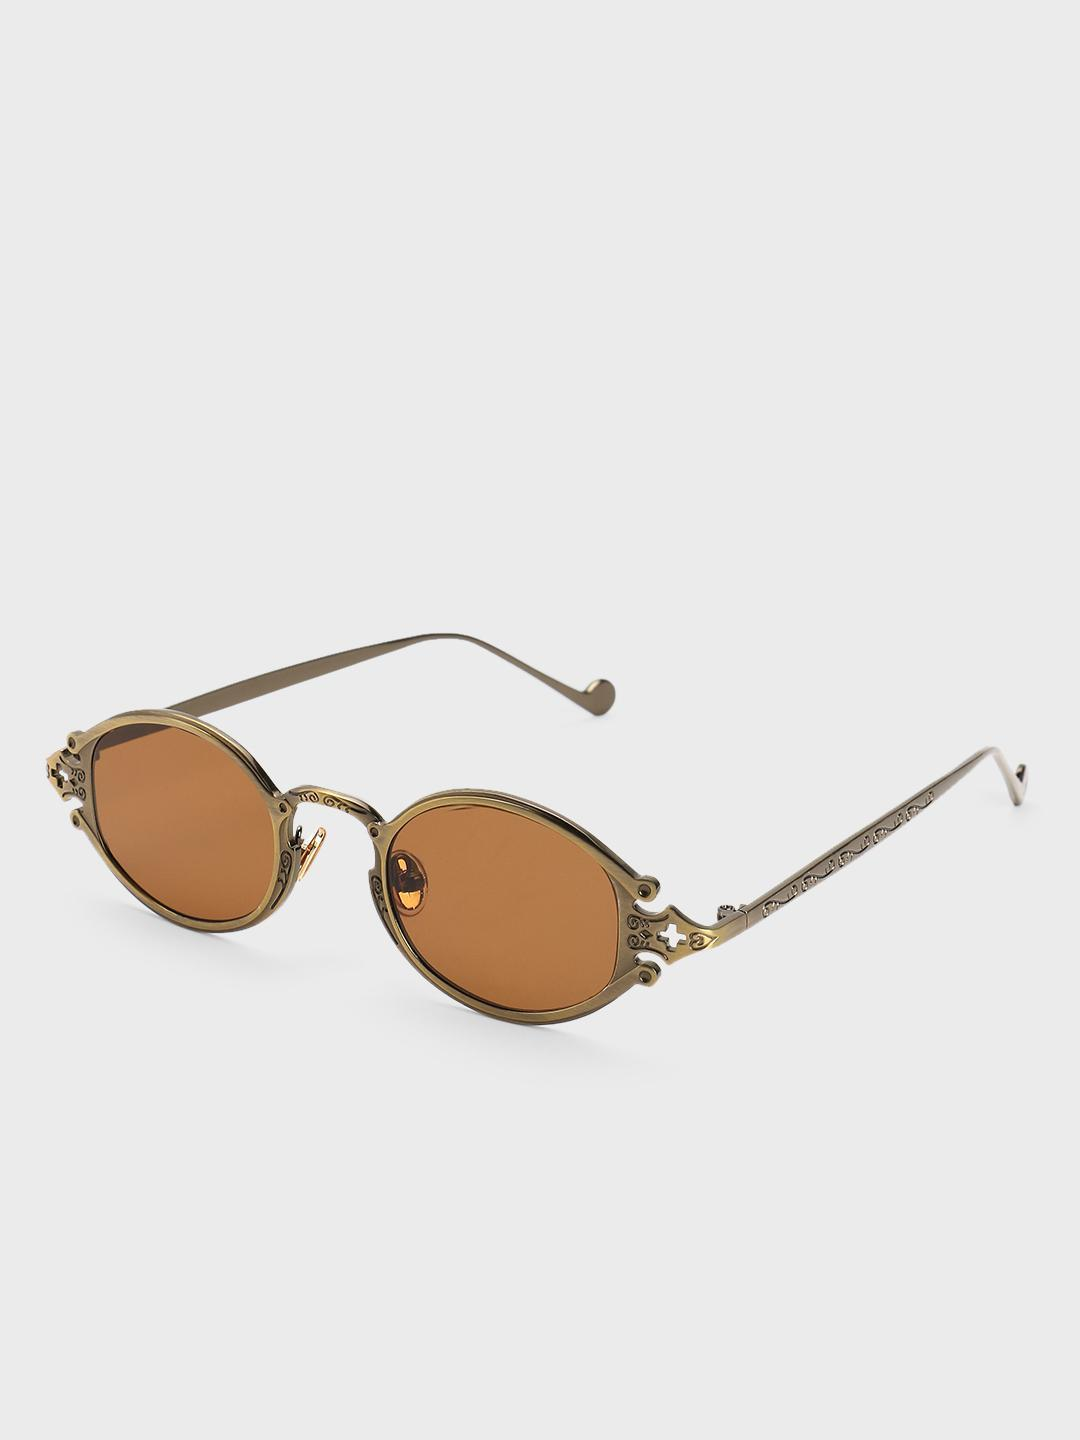 Pataaka Brown Antique Frame Round Sunglasses 1